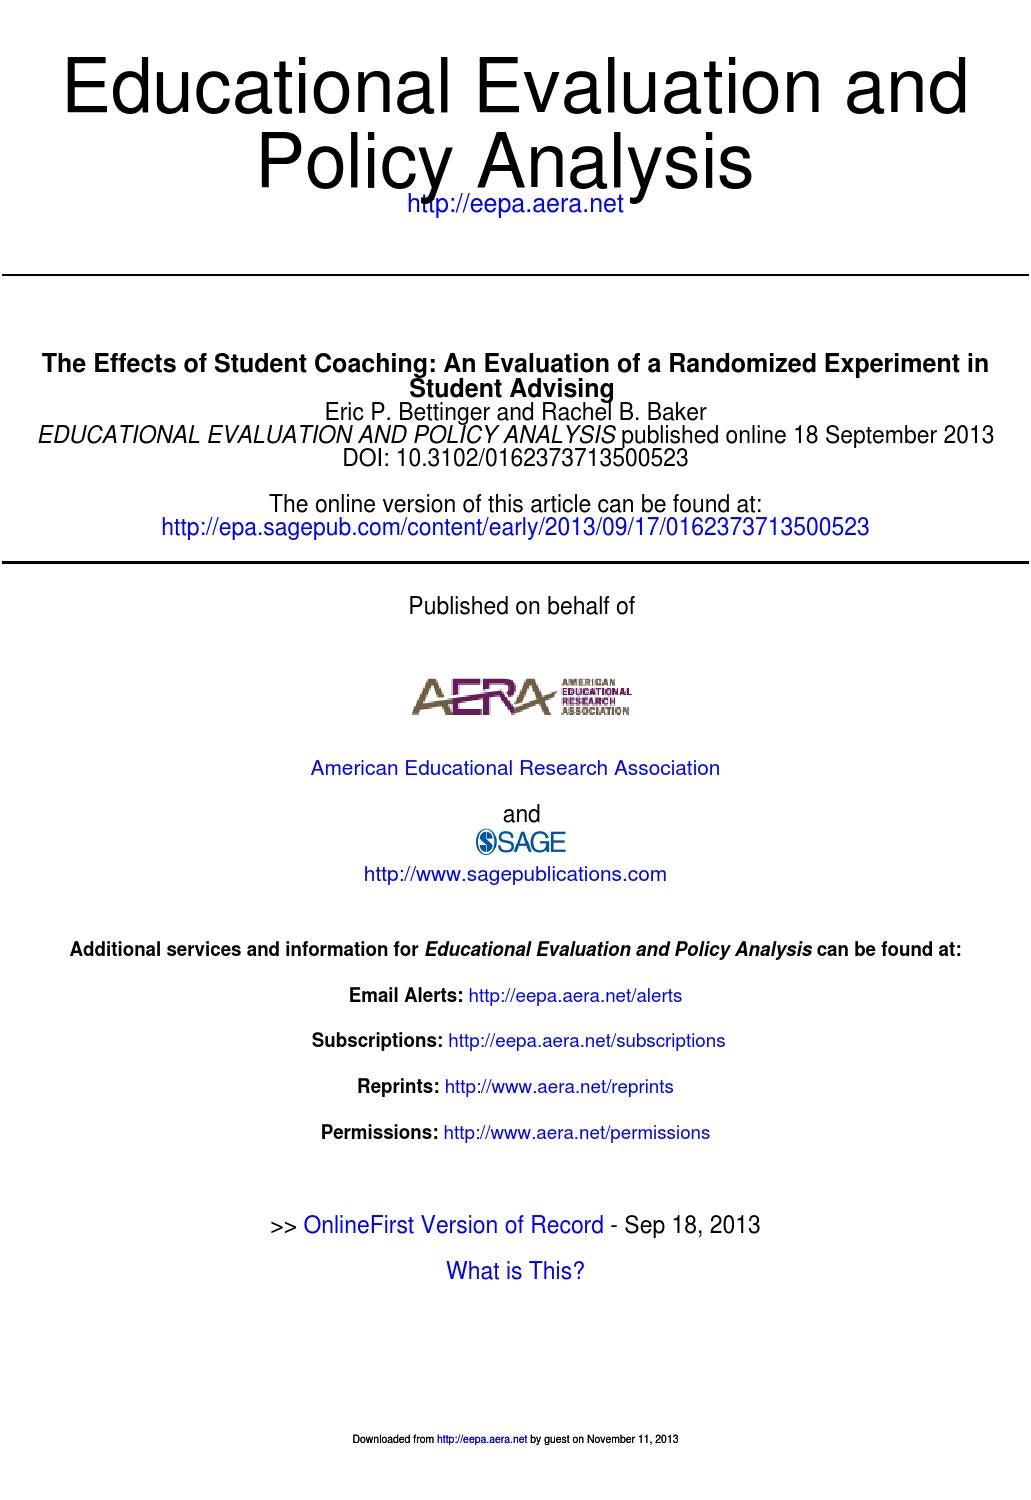 bettinger and baker the effects of student coaching services